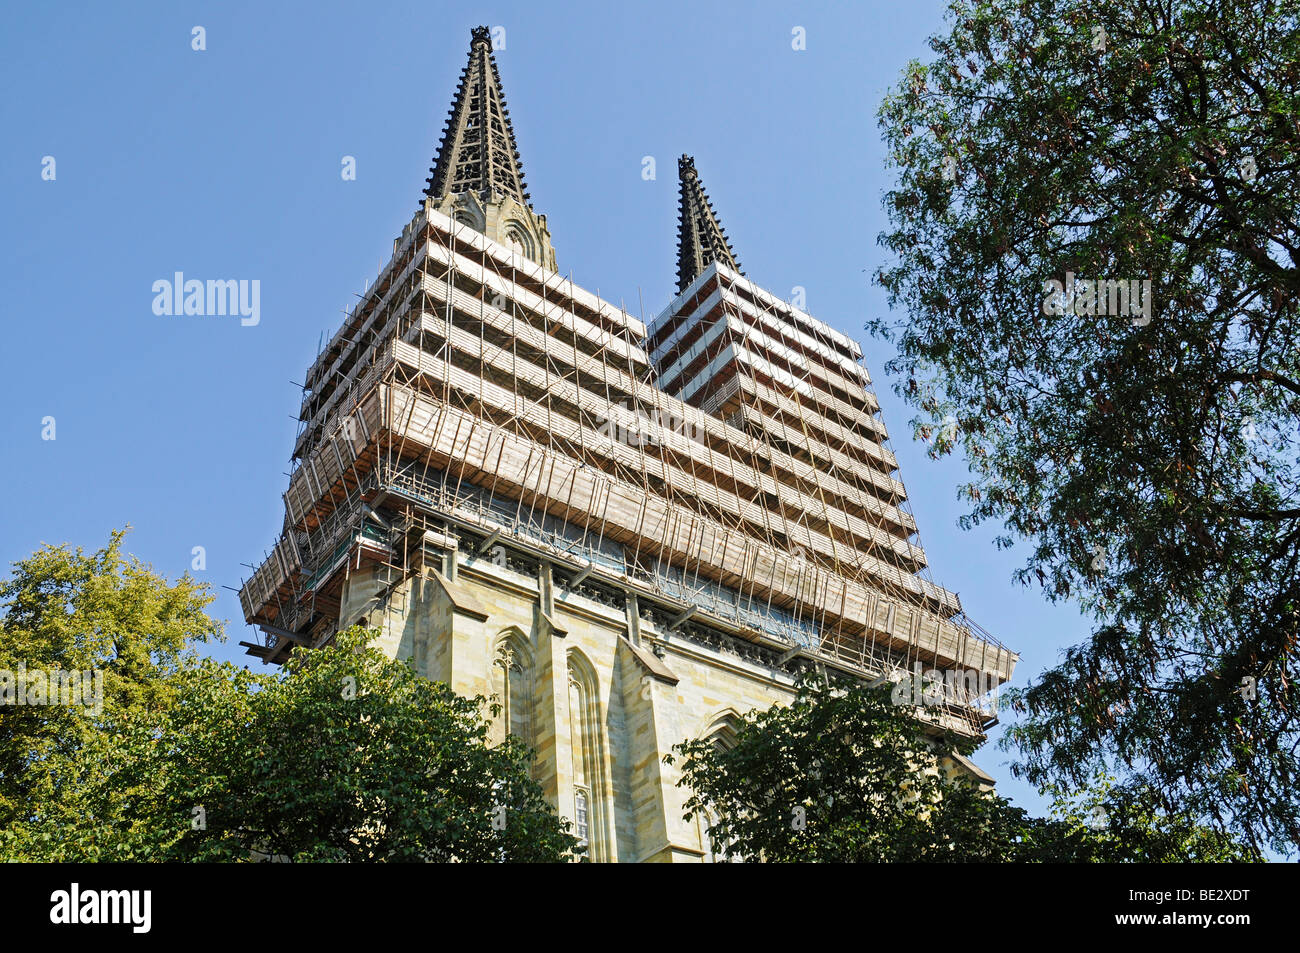 Restoration of church steeples, St. Maria zur Wiese, Wiesenkirche Church, Soest, North Rhine-Westphalia, Germany, - Stock Image